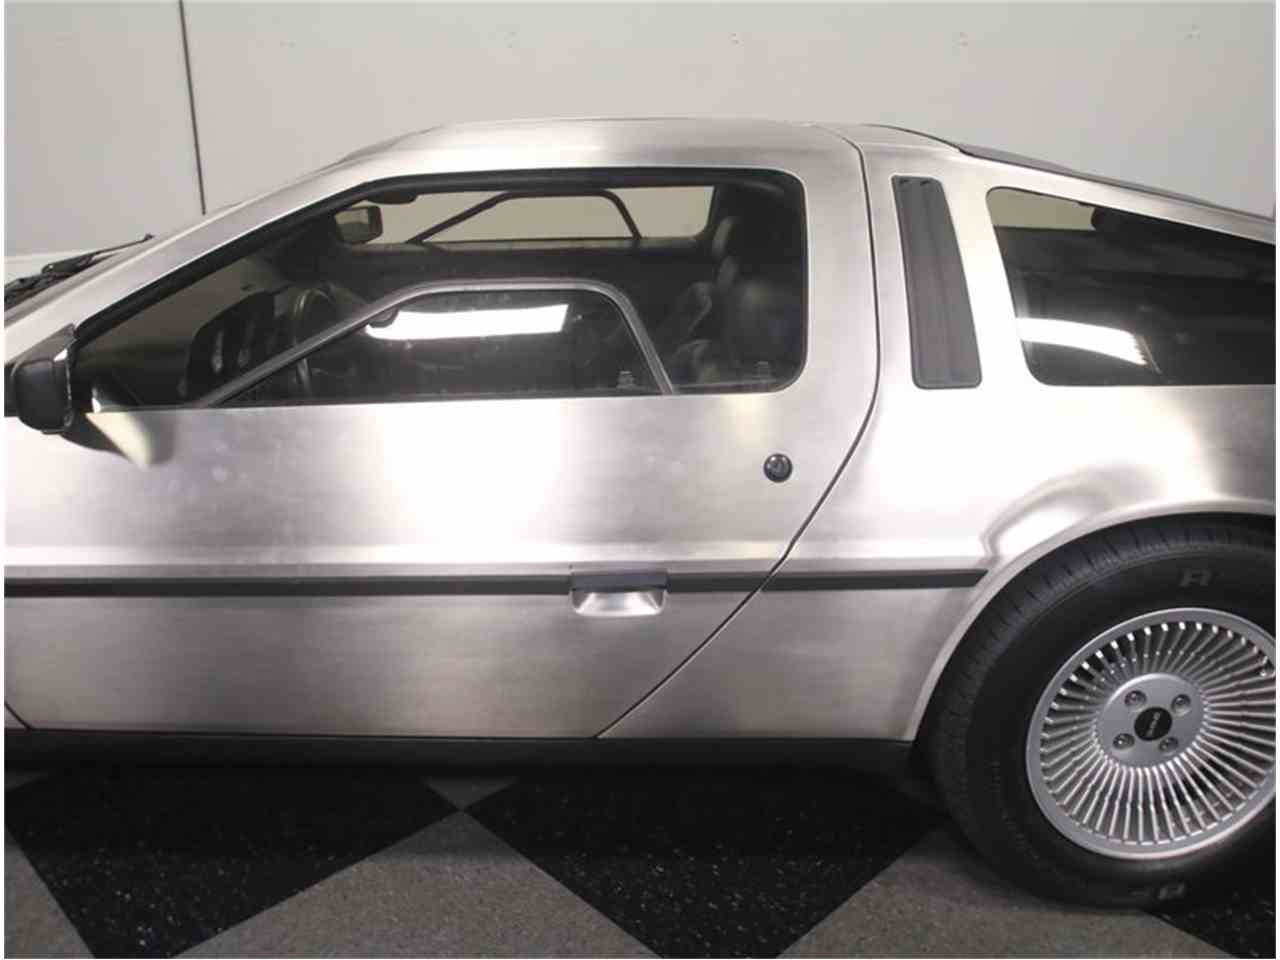 Large Picture of '81 DMC-12 - $49,995.00 - MGXM